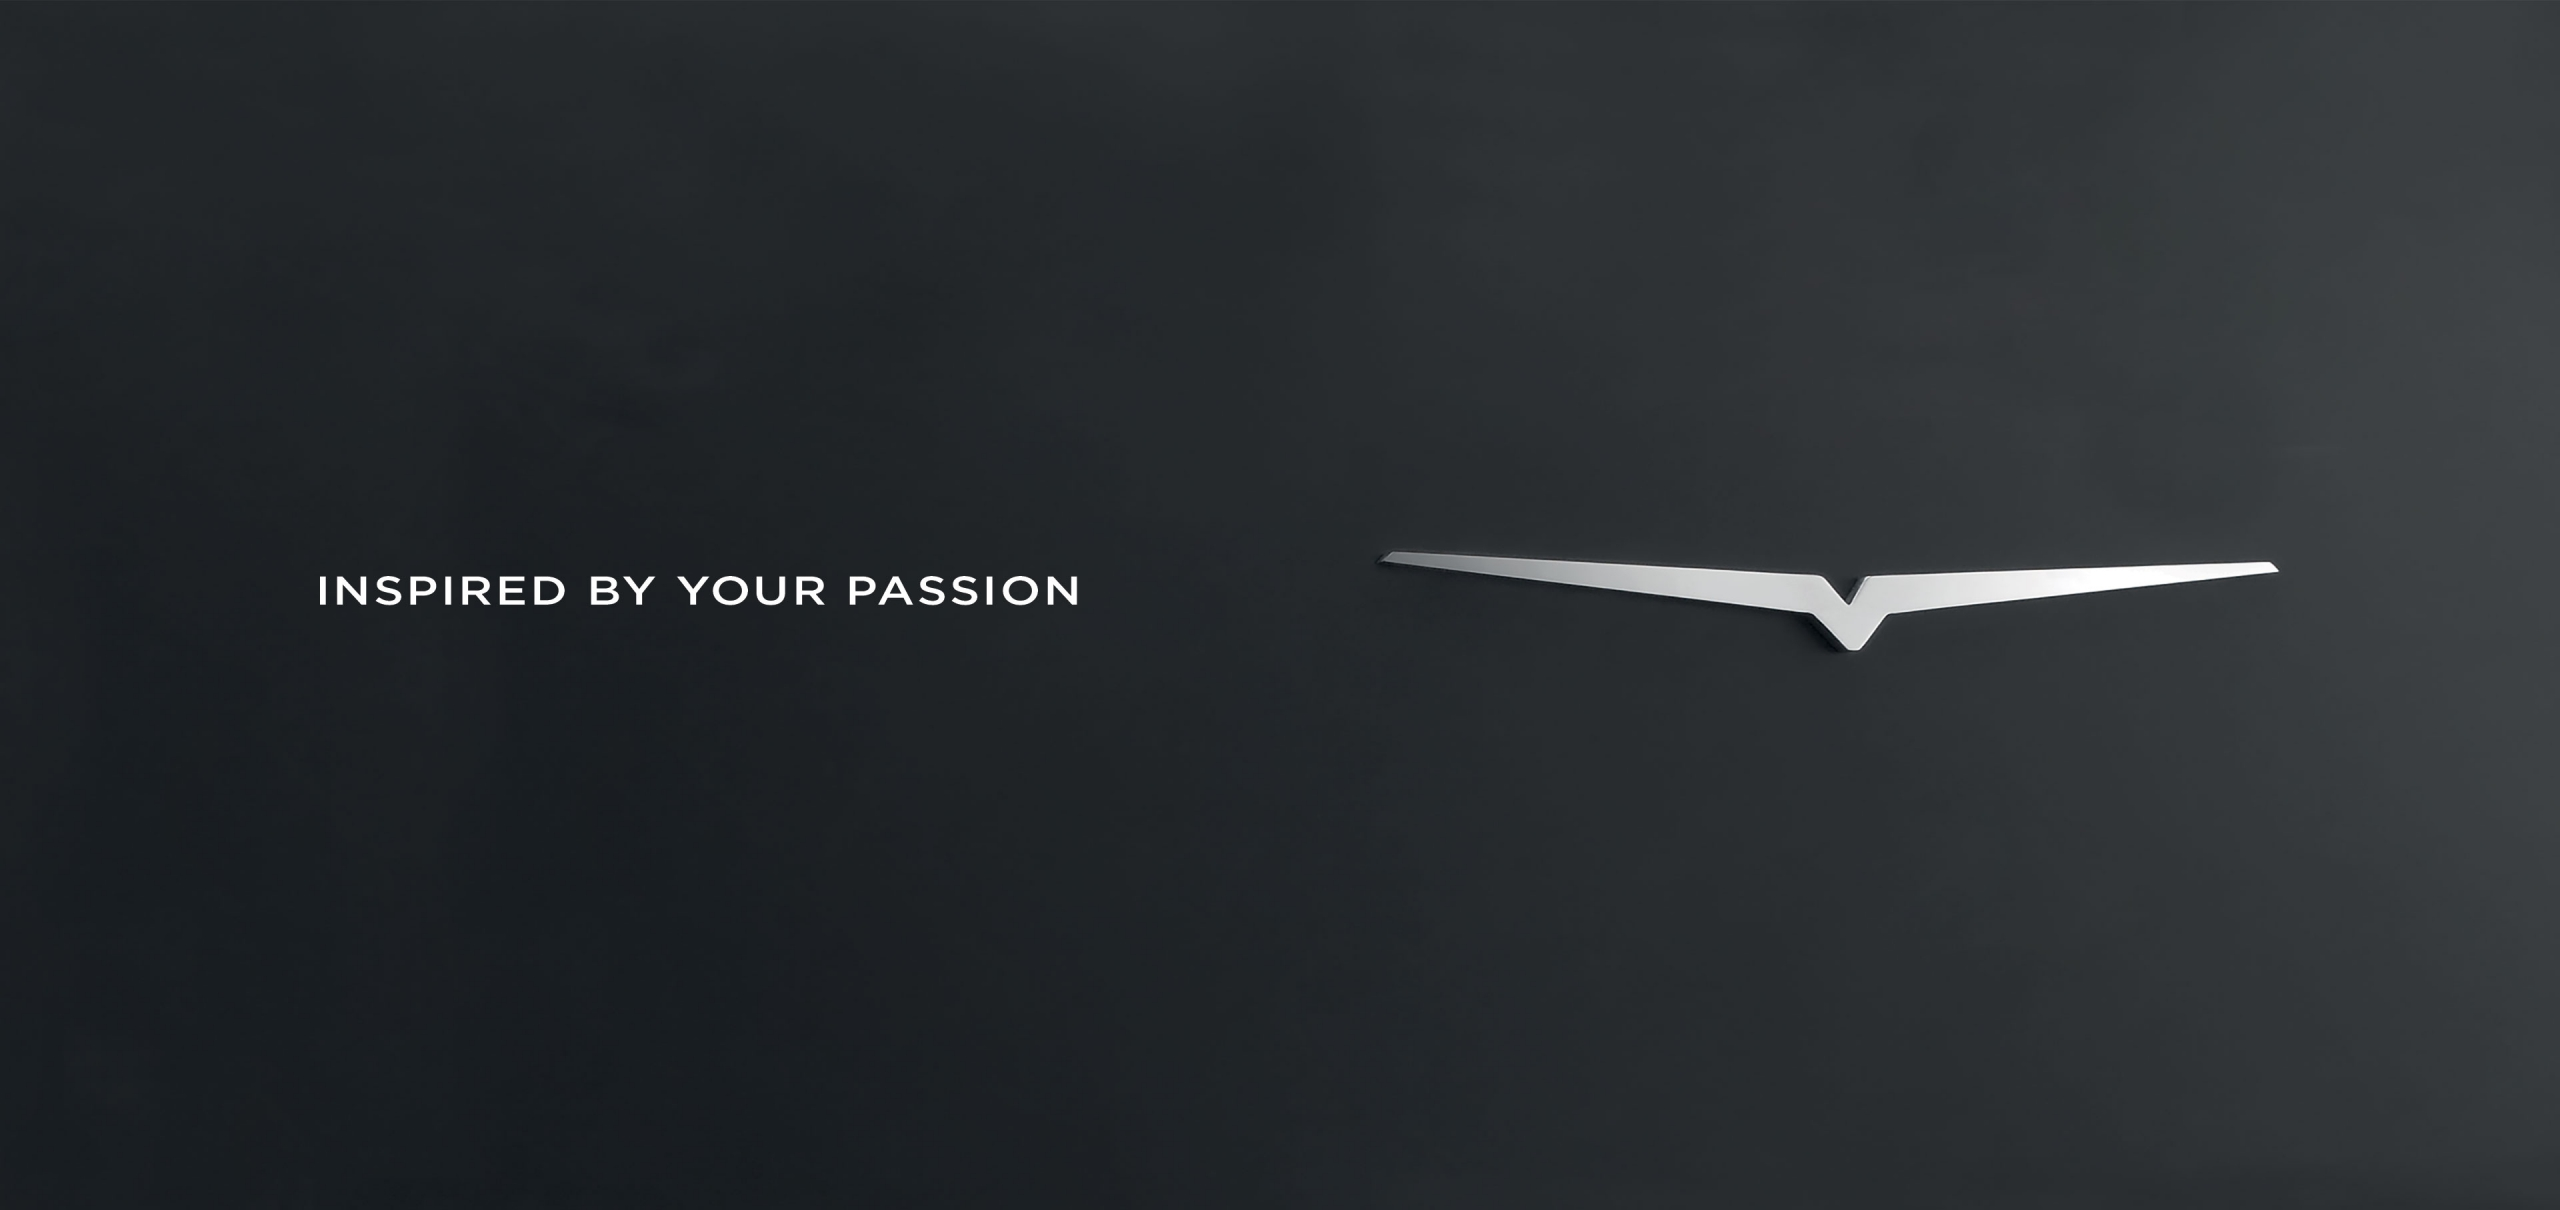 inspired by your passion